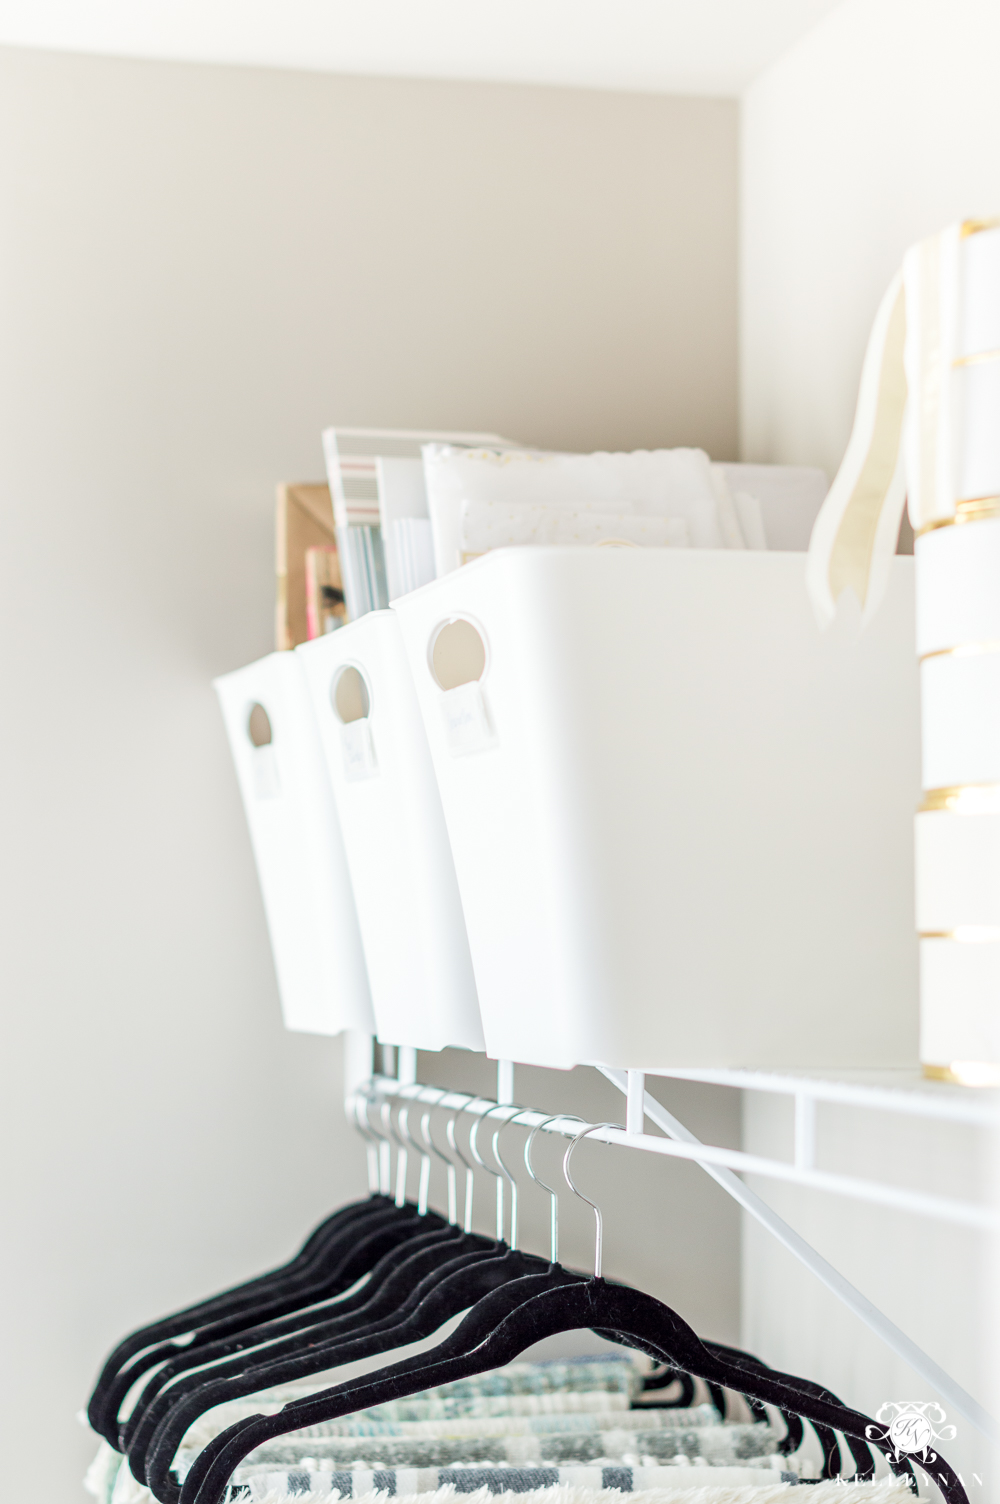 Gift wrap bins and organization in the closet